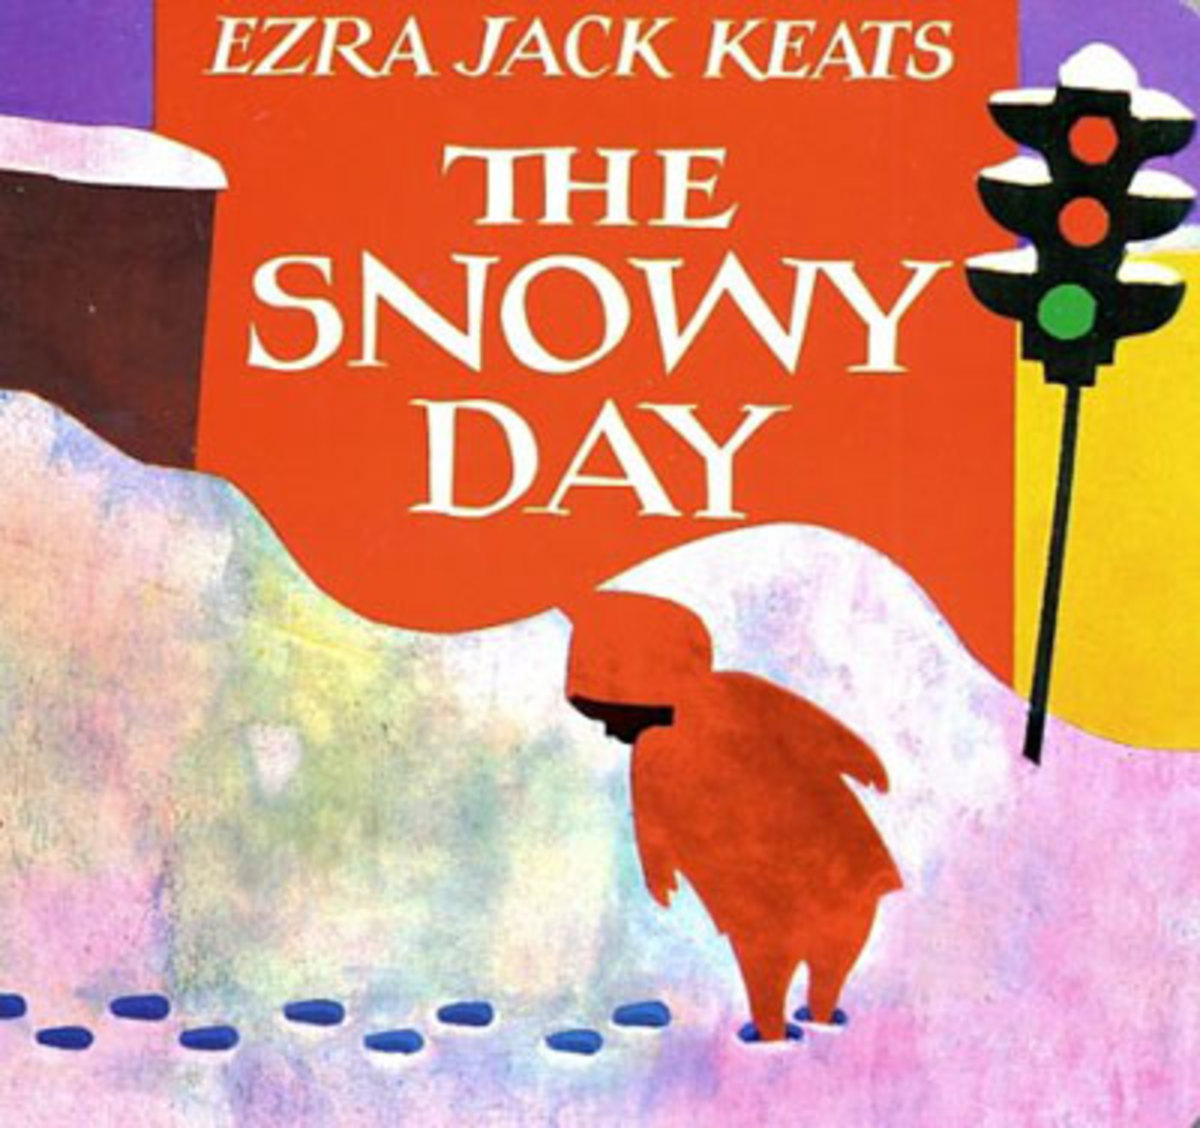 The award winning book by Ezra Jack Keats has been an important children's favorite for many years.